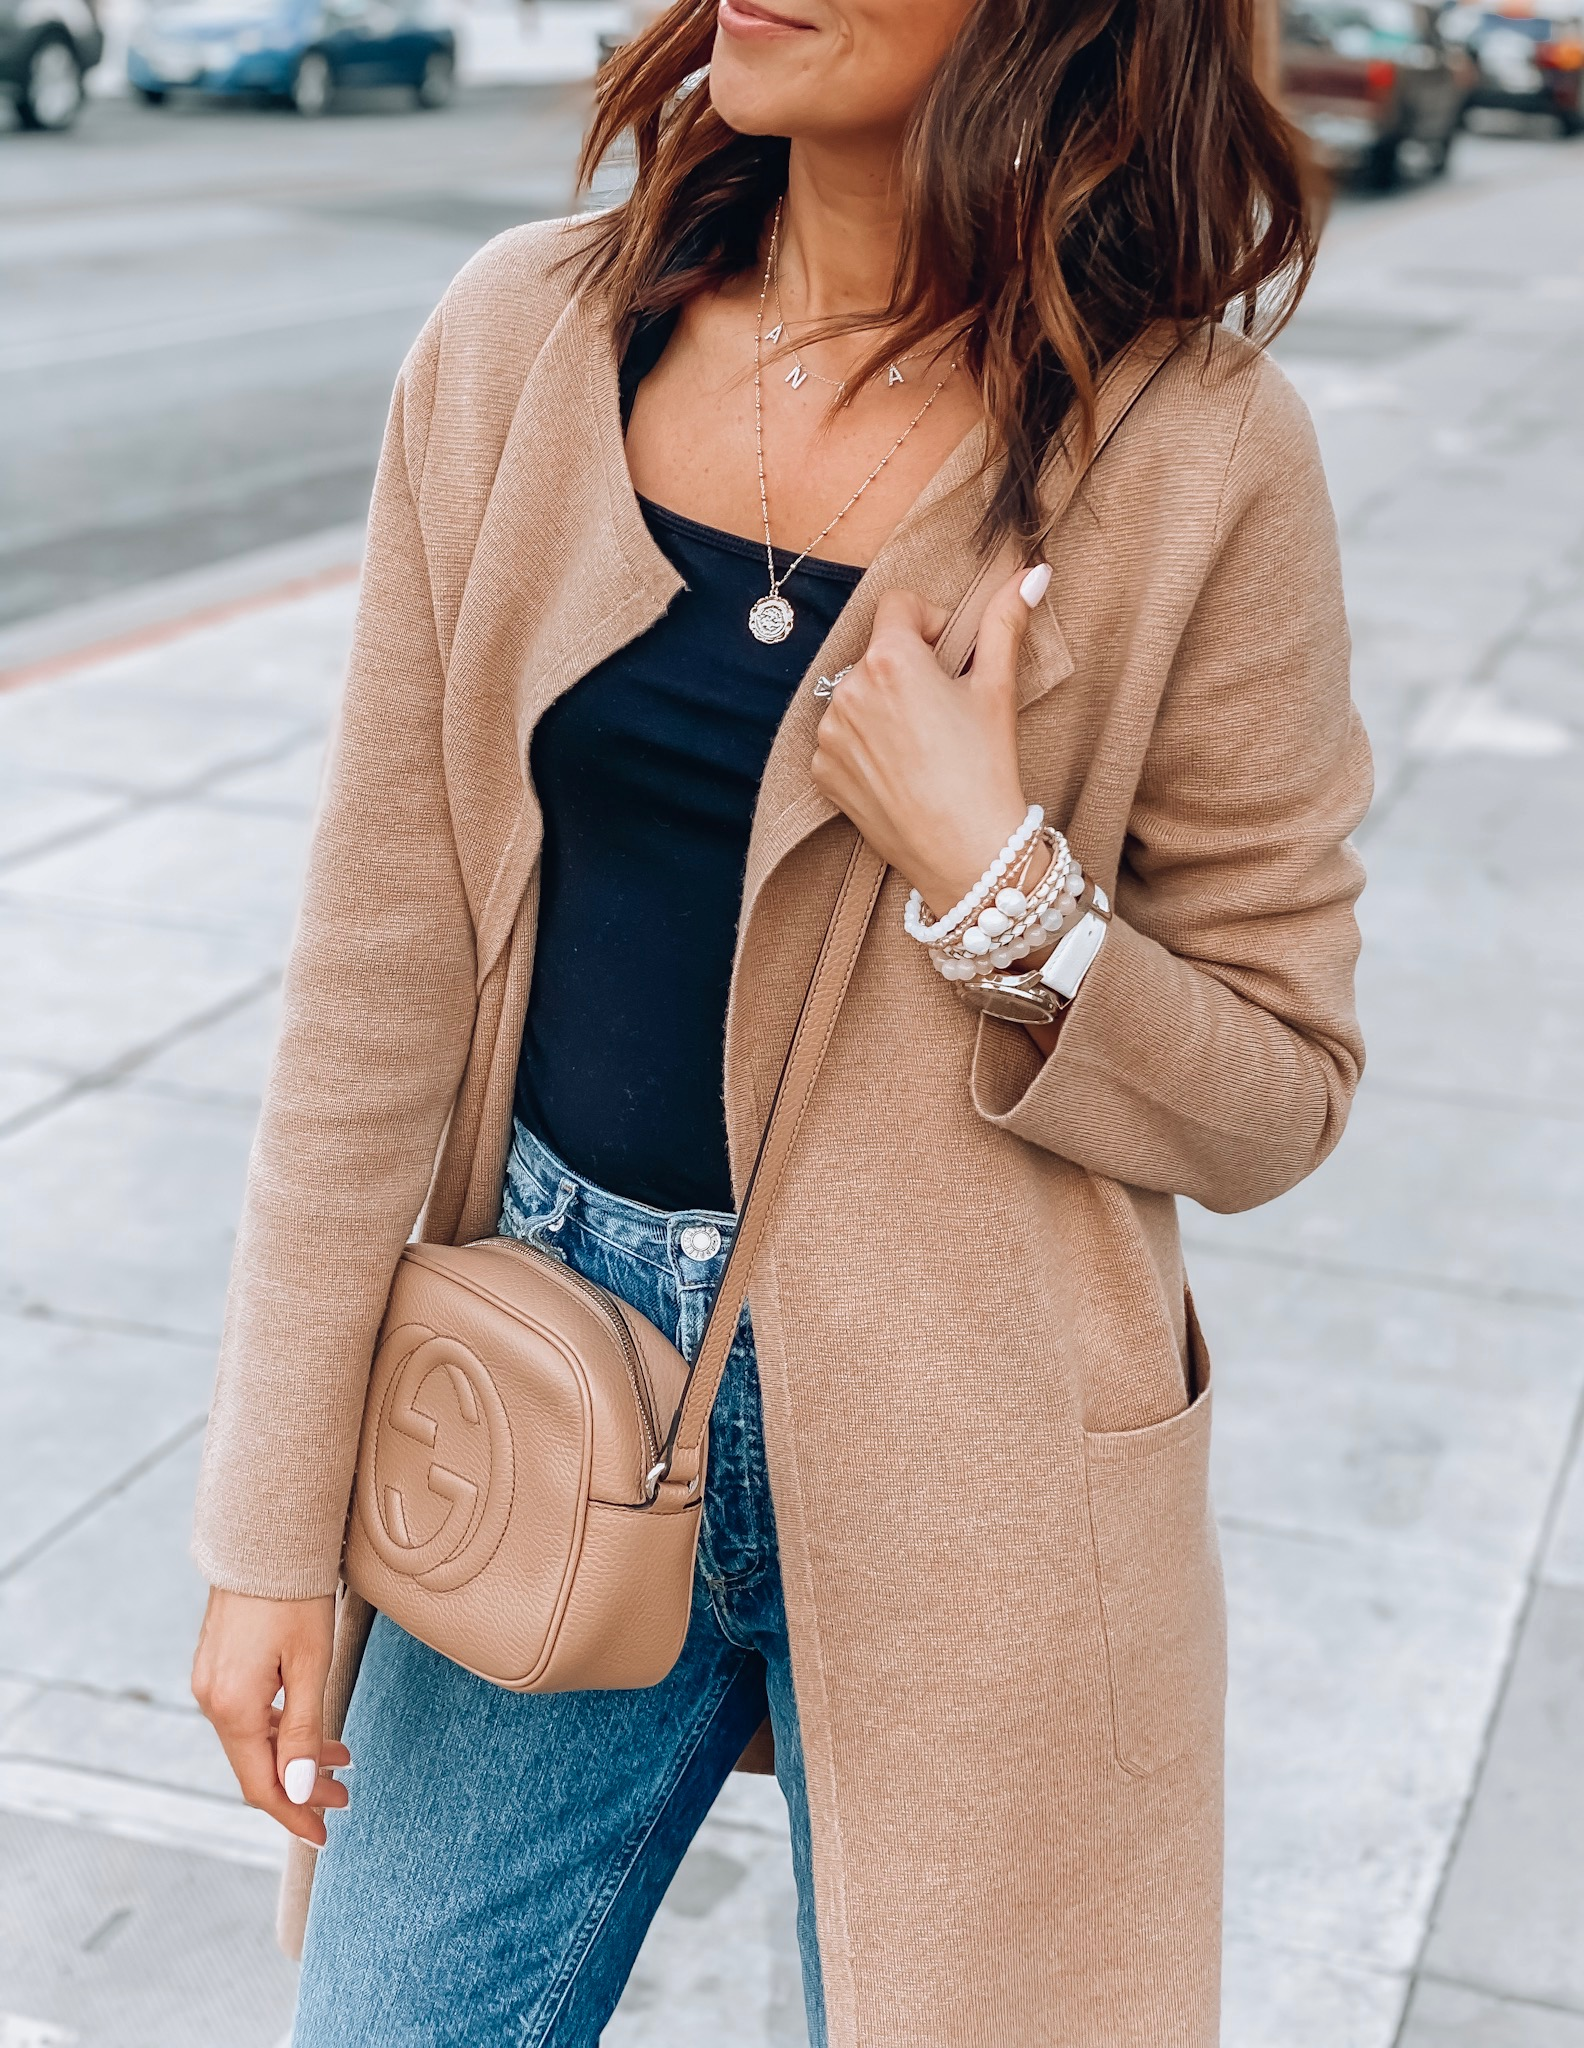 How to Style J.Crew Juliette Sweater Blazer